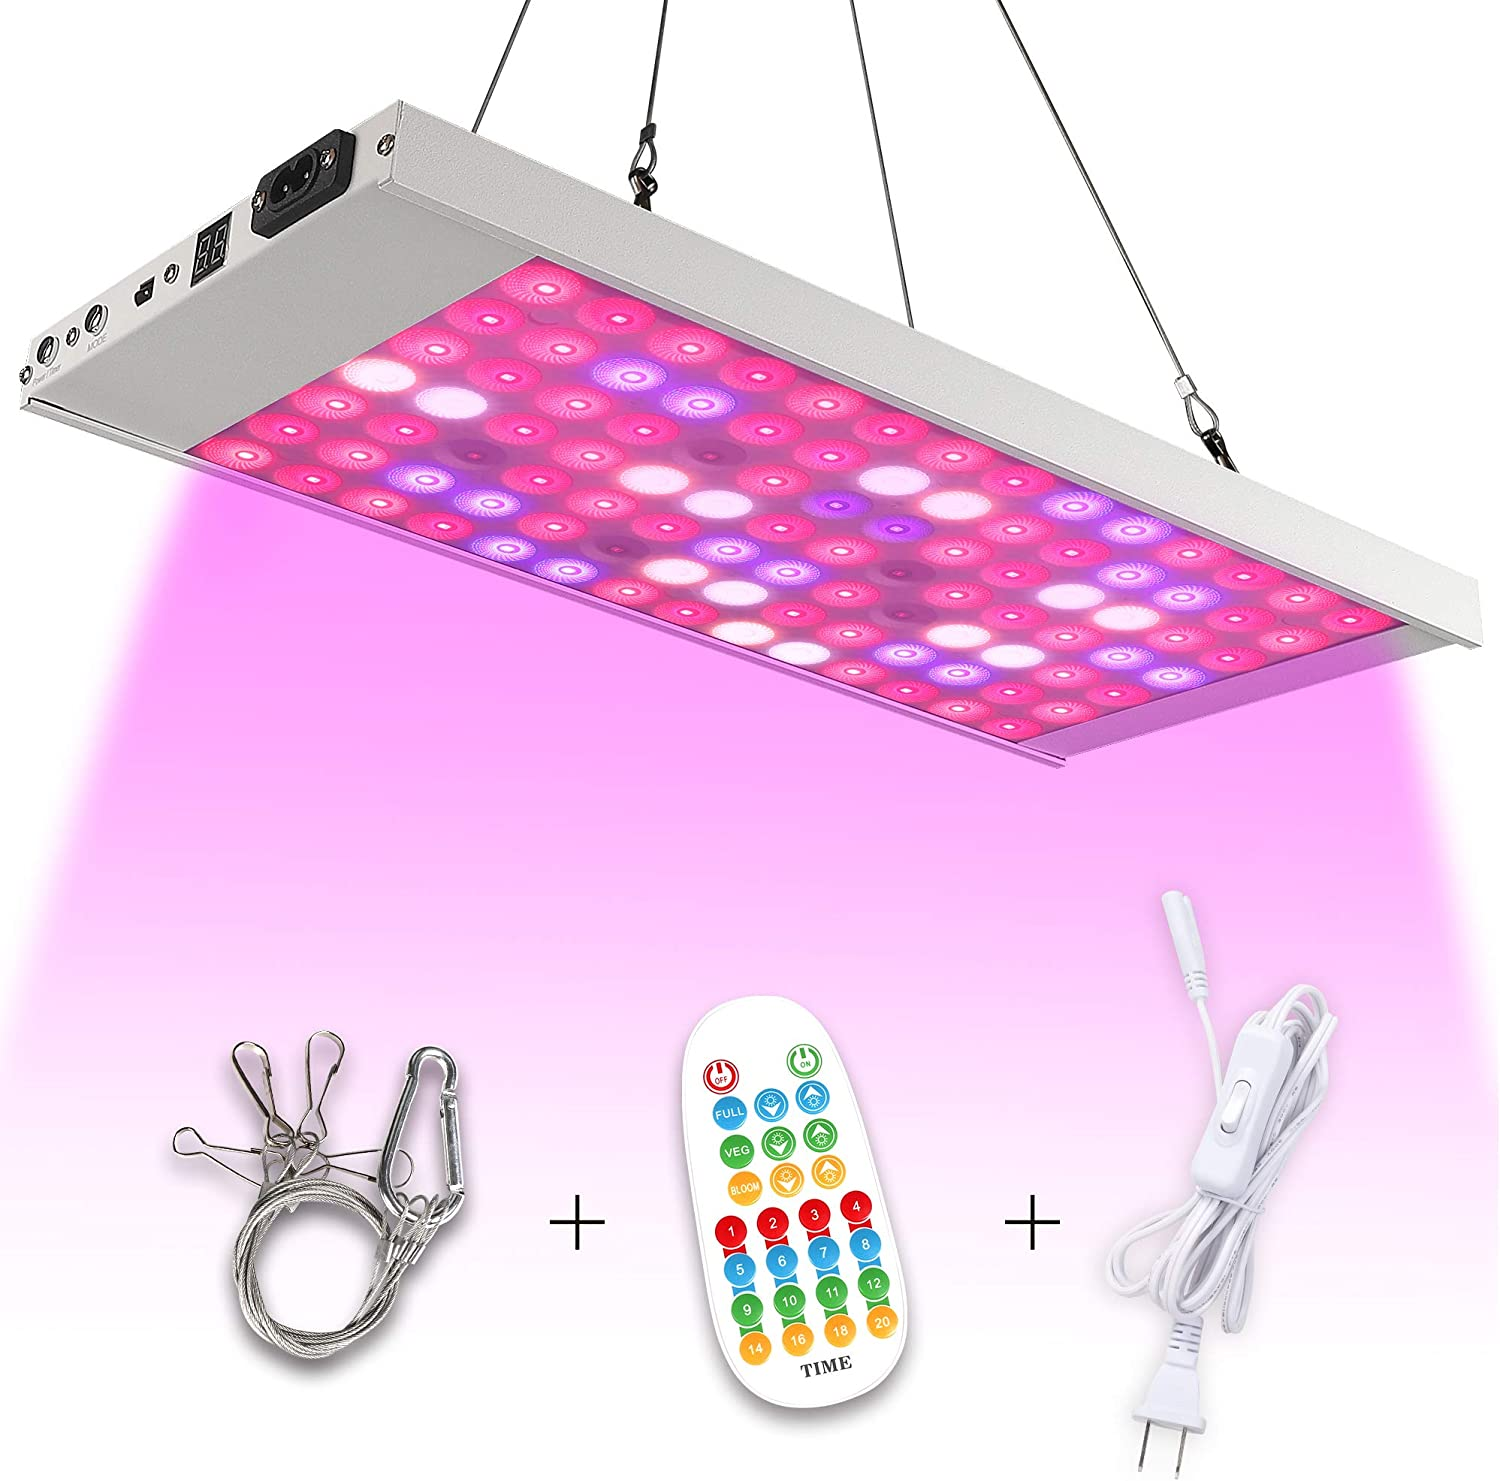 Koopower LED Grow Light,Full Spectrum Panel Grow Lamp with Timer and Remote Control,Hanging White Grow Light for Indoor Hydroponics Greenhouse Plants Veg and Bloom (Dimmable)